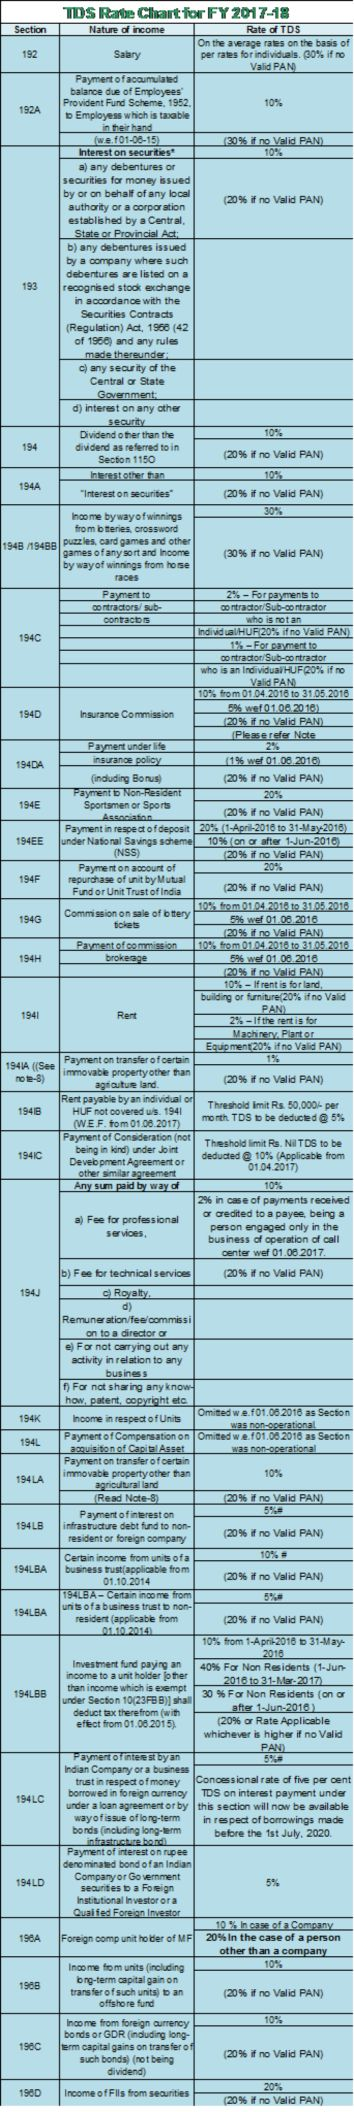 Rates of TDS as applicable for FY 2017-18